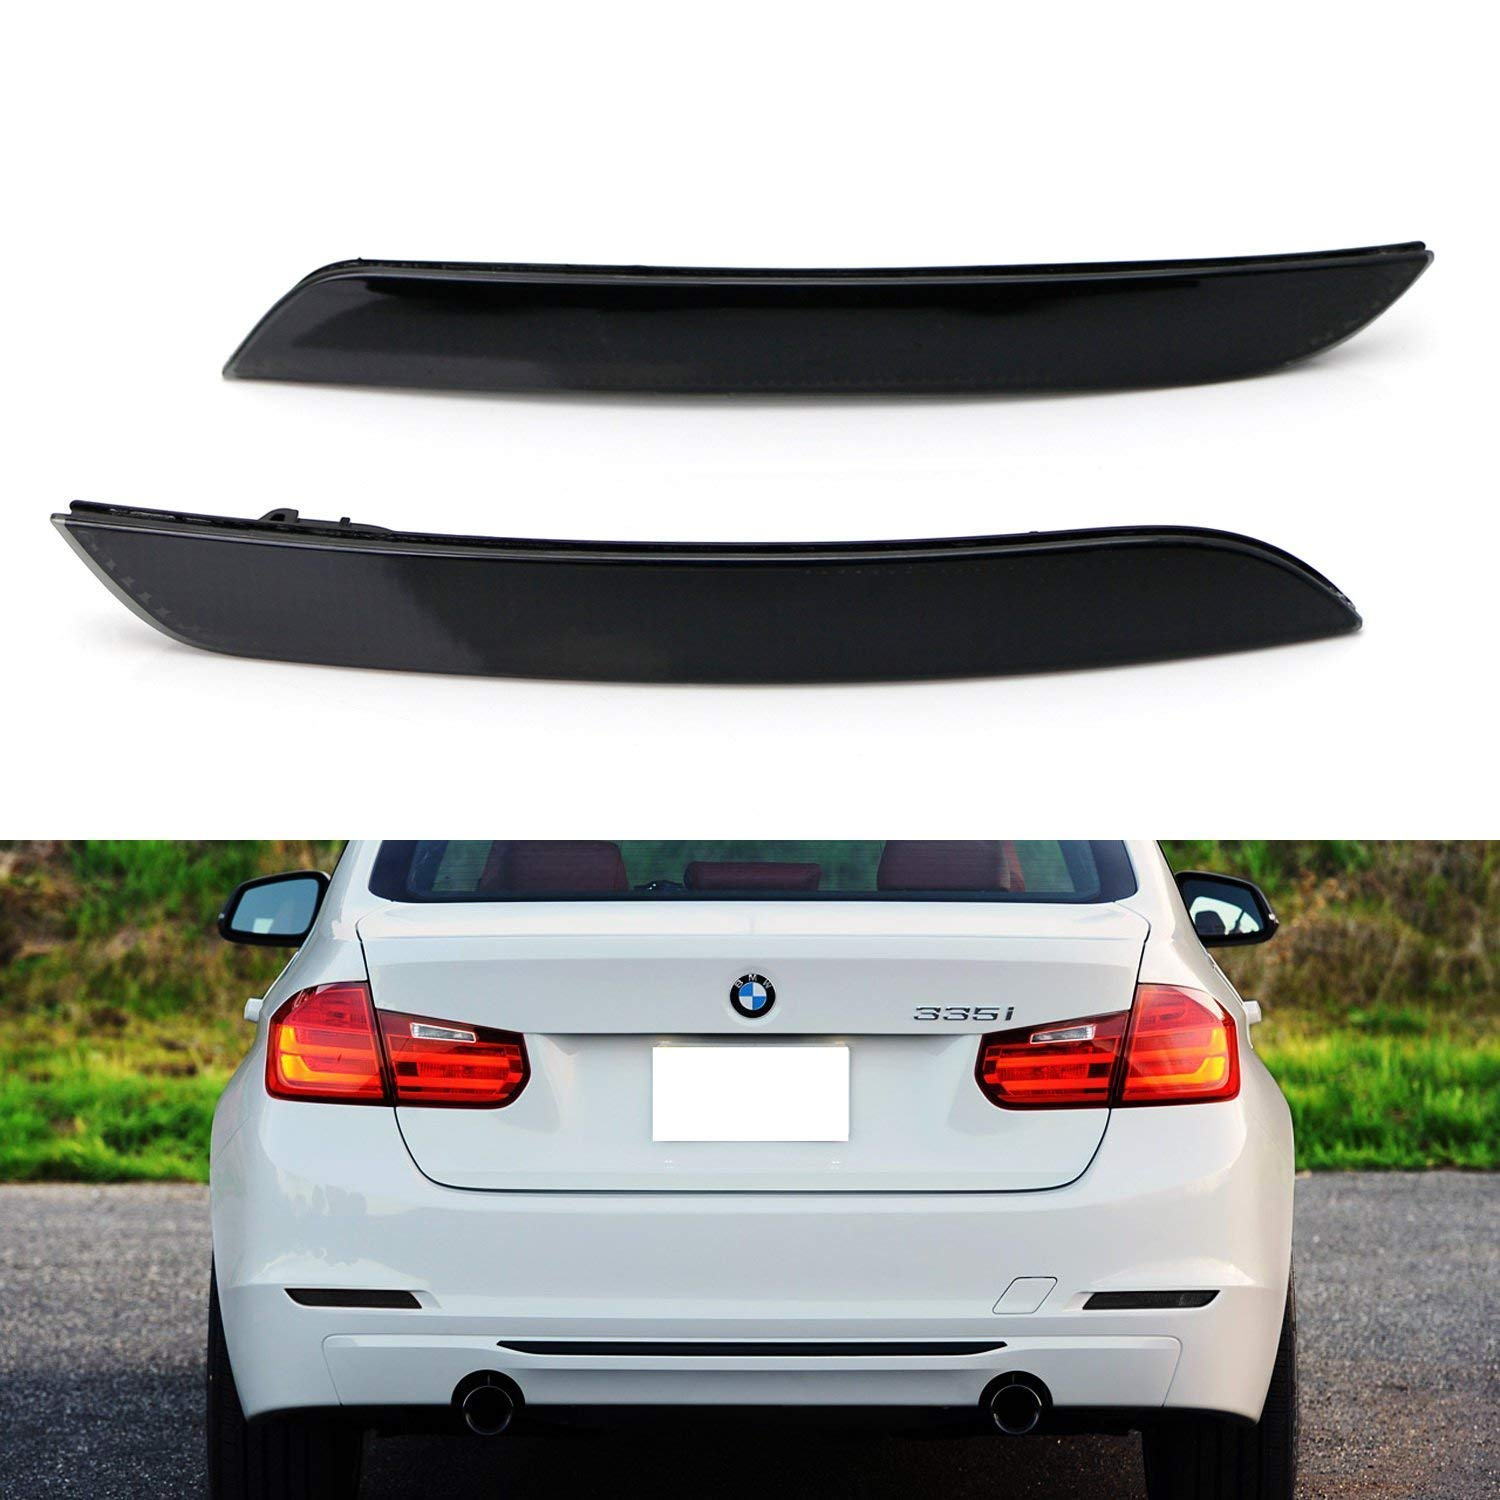 iJDMTOY Smoked Lens Rear Bumper Reflector Lenses For BMW F30 F31 F32 F33 3 4 Series Regular Bumper, OE-Spec LH RH Assembly (Will NOT Fit Sports Bumper or M3/M4) iJDMTOY Auto Accessories Back Bumper Reflex Lamp Trim Replacement